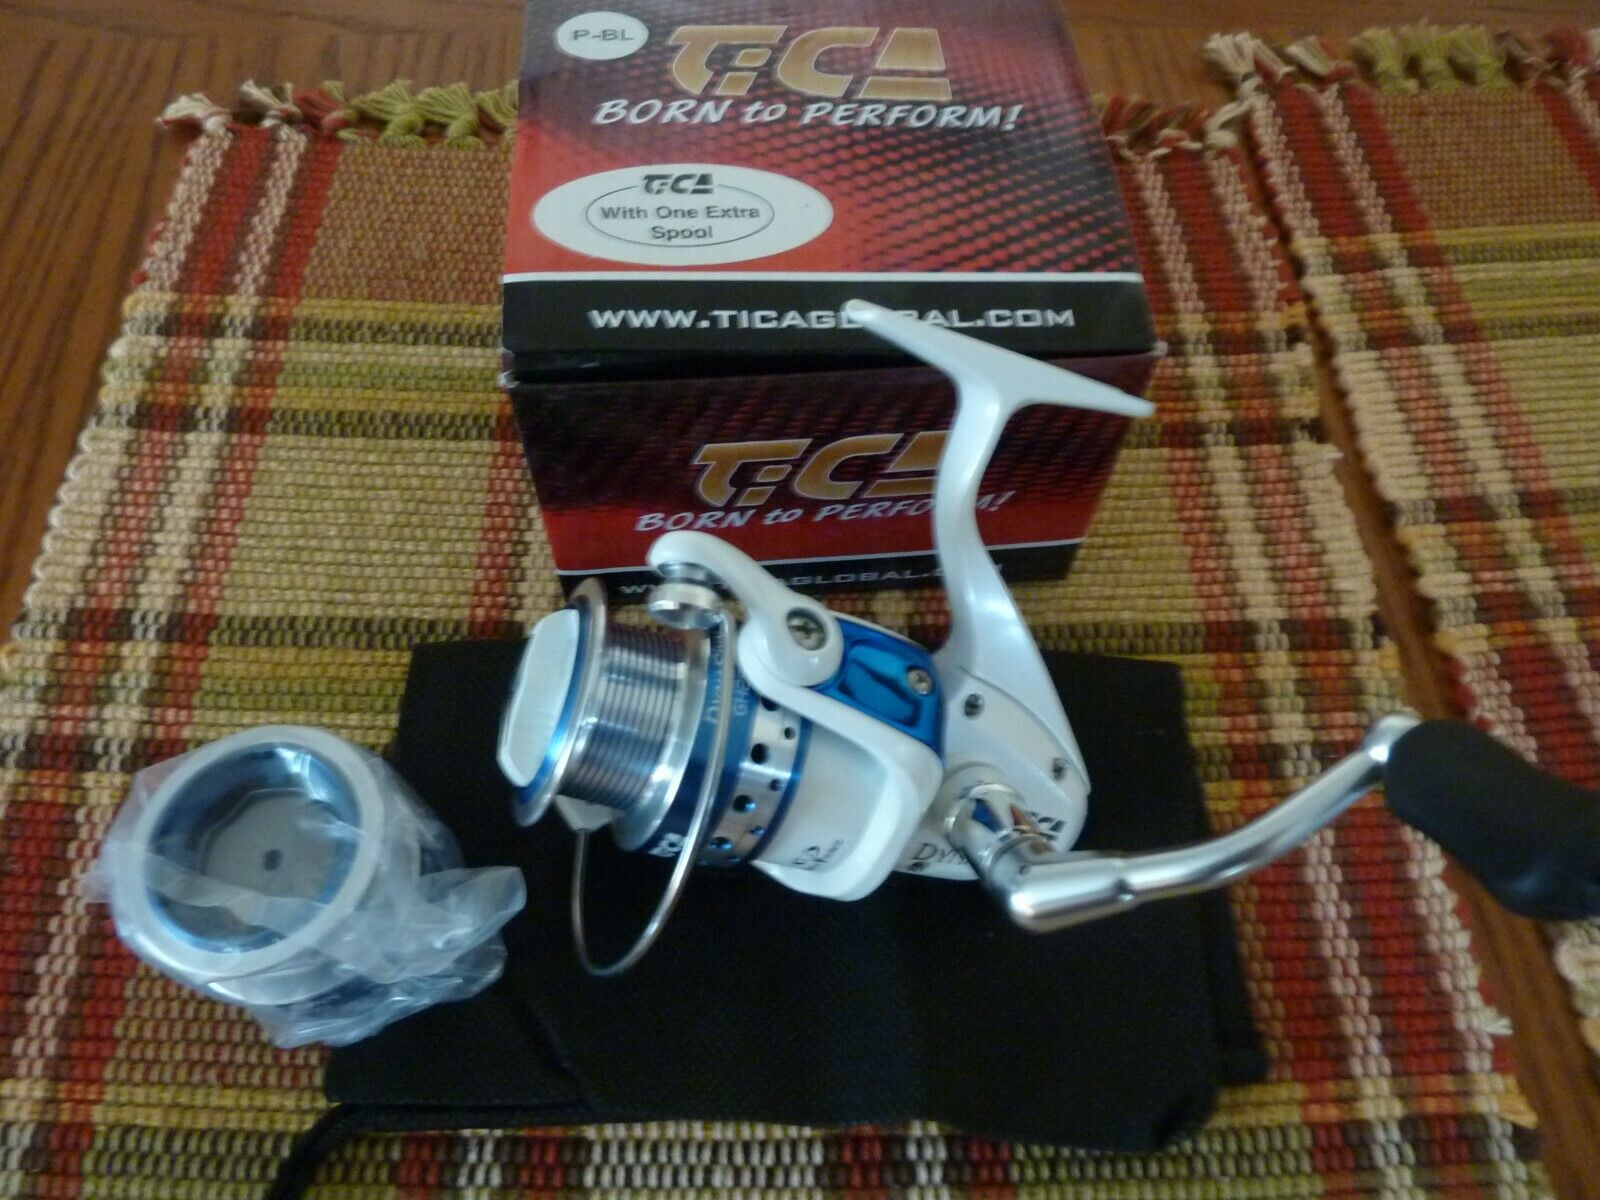 TICA  GH2500 spinning reel NEW, EXTRA SPOOL